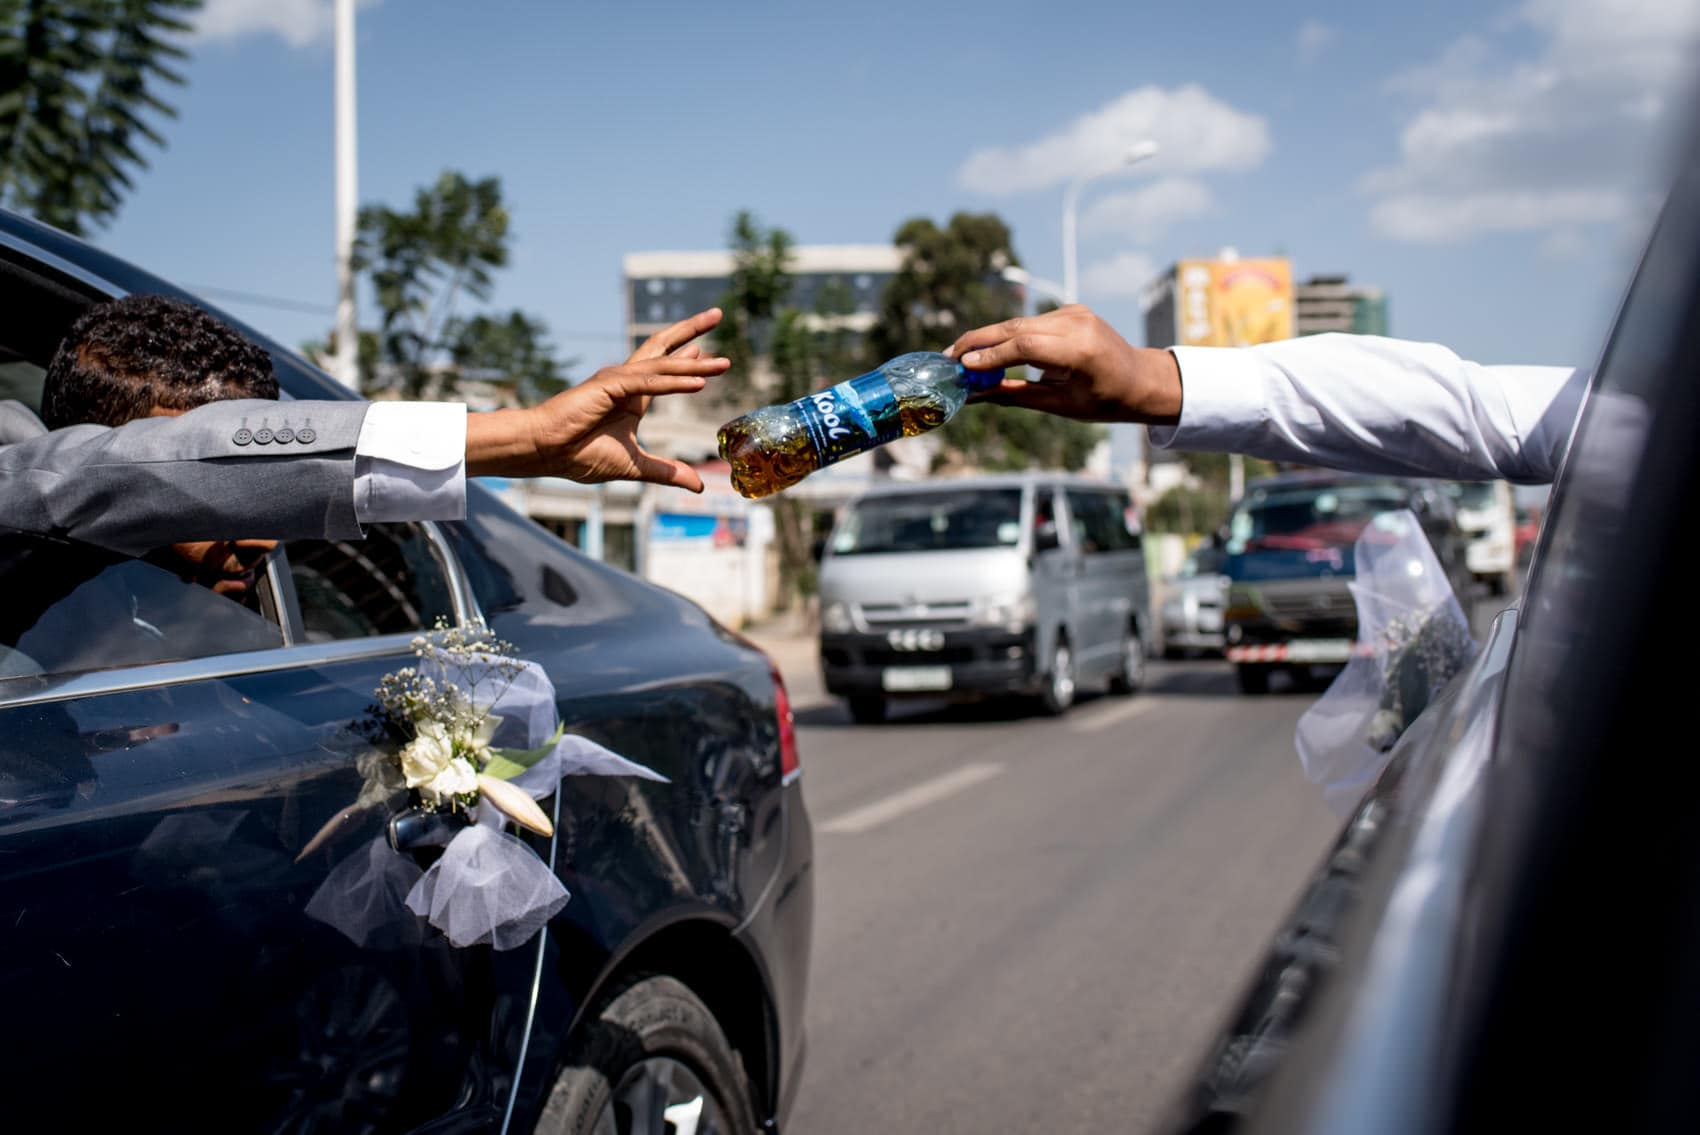 handing out whisky on the motorway in Addis Ababa